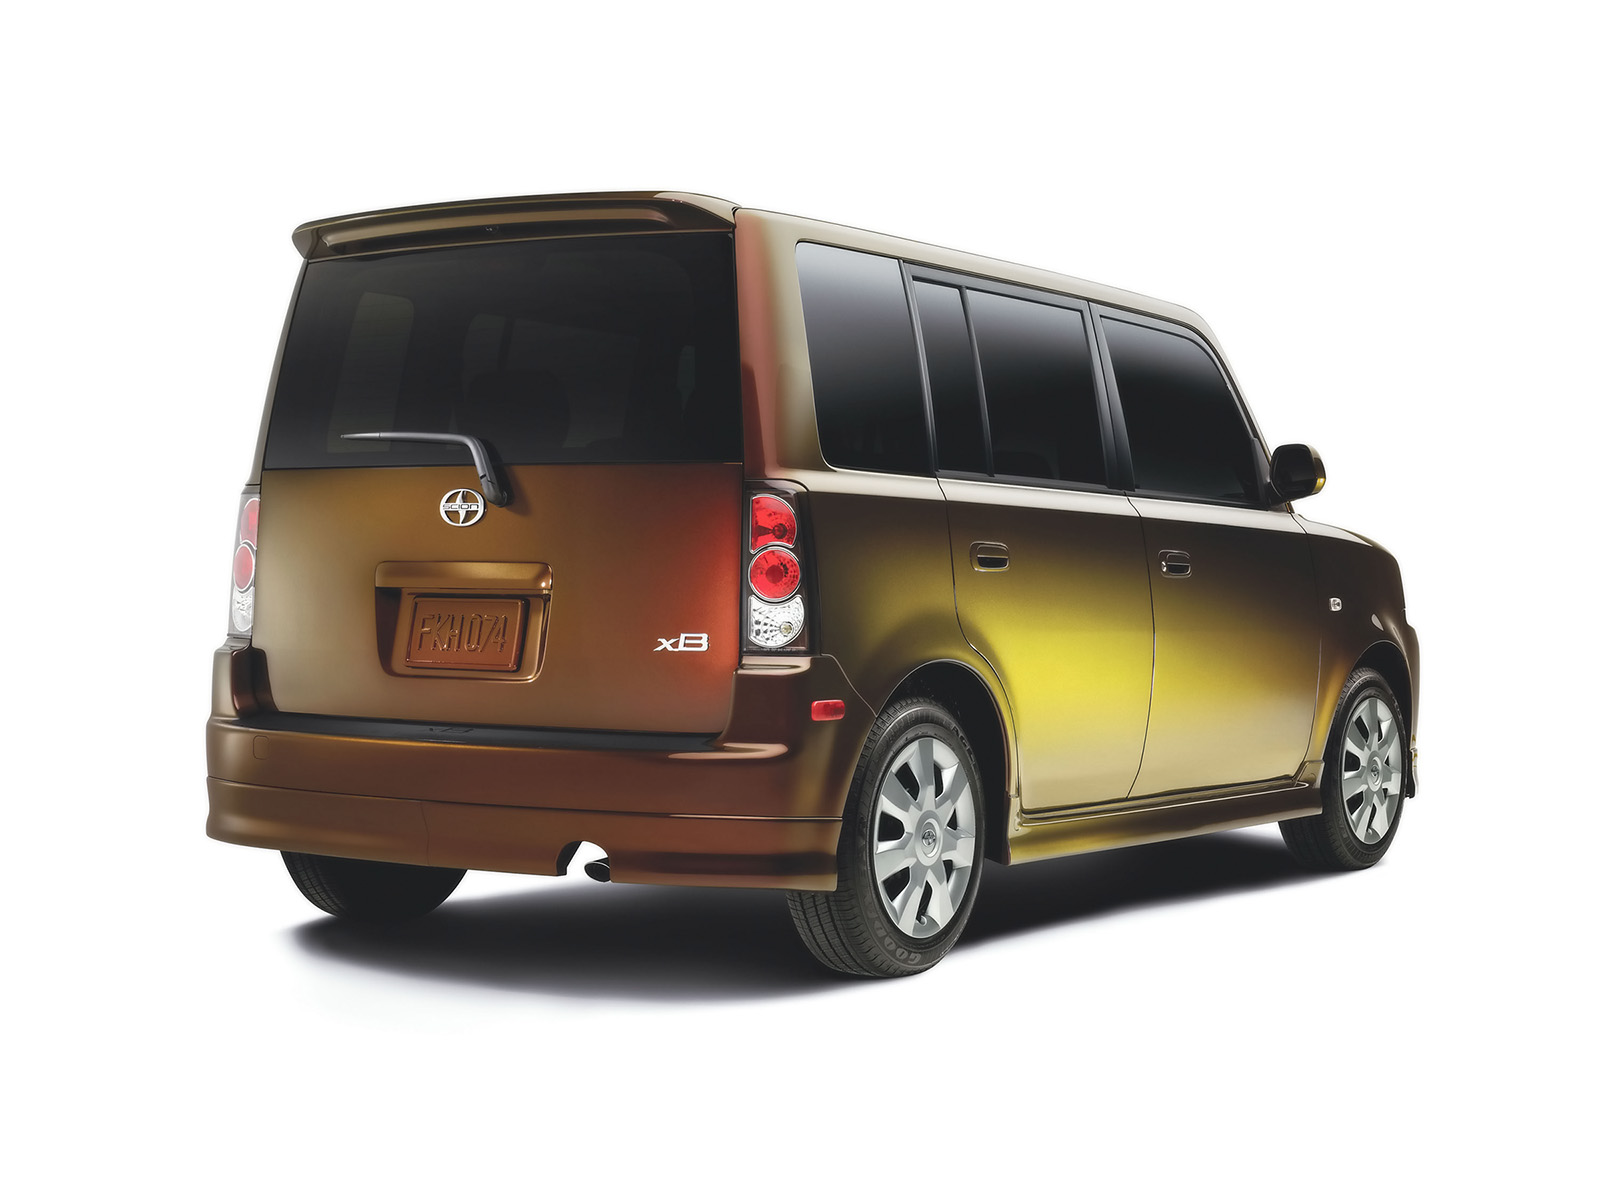 2006 Scion Xb Release Series 4 0